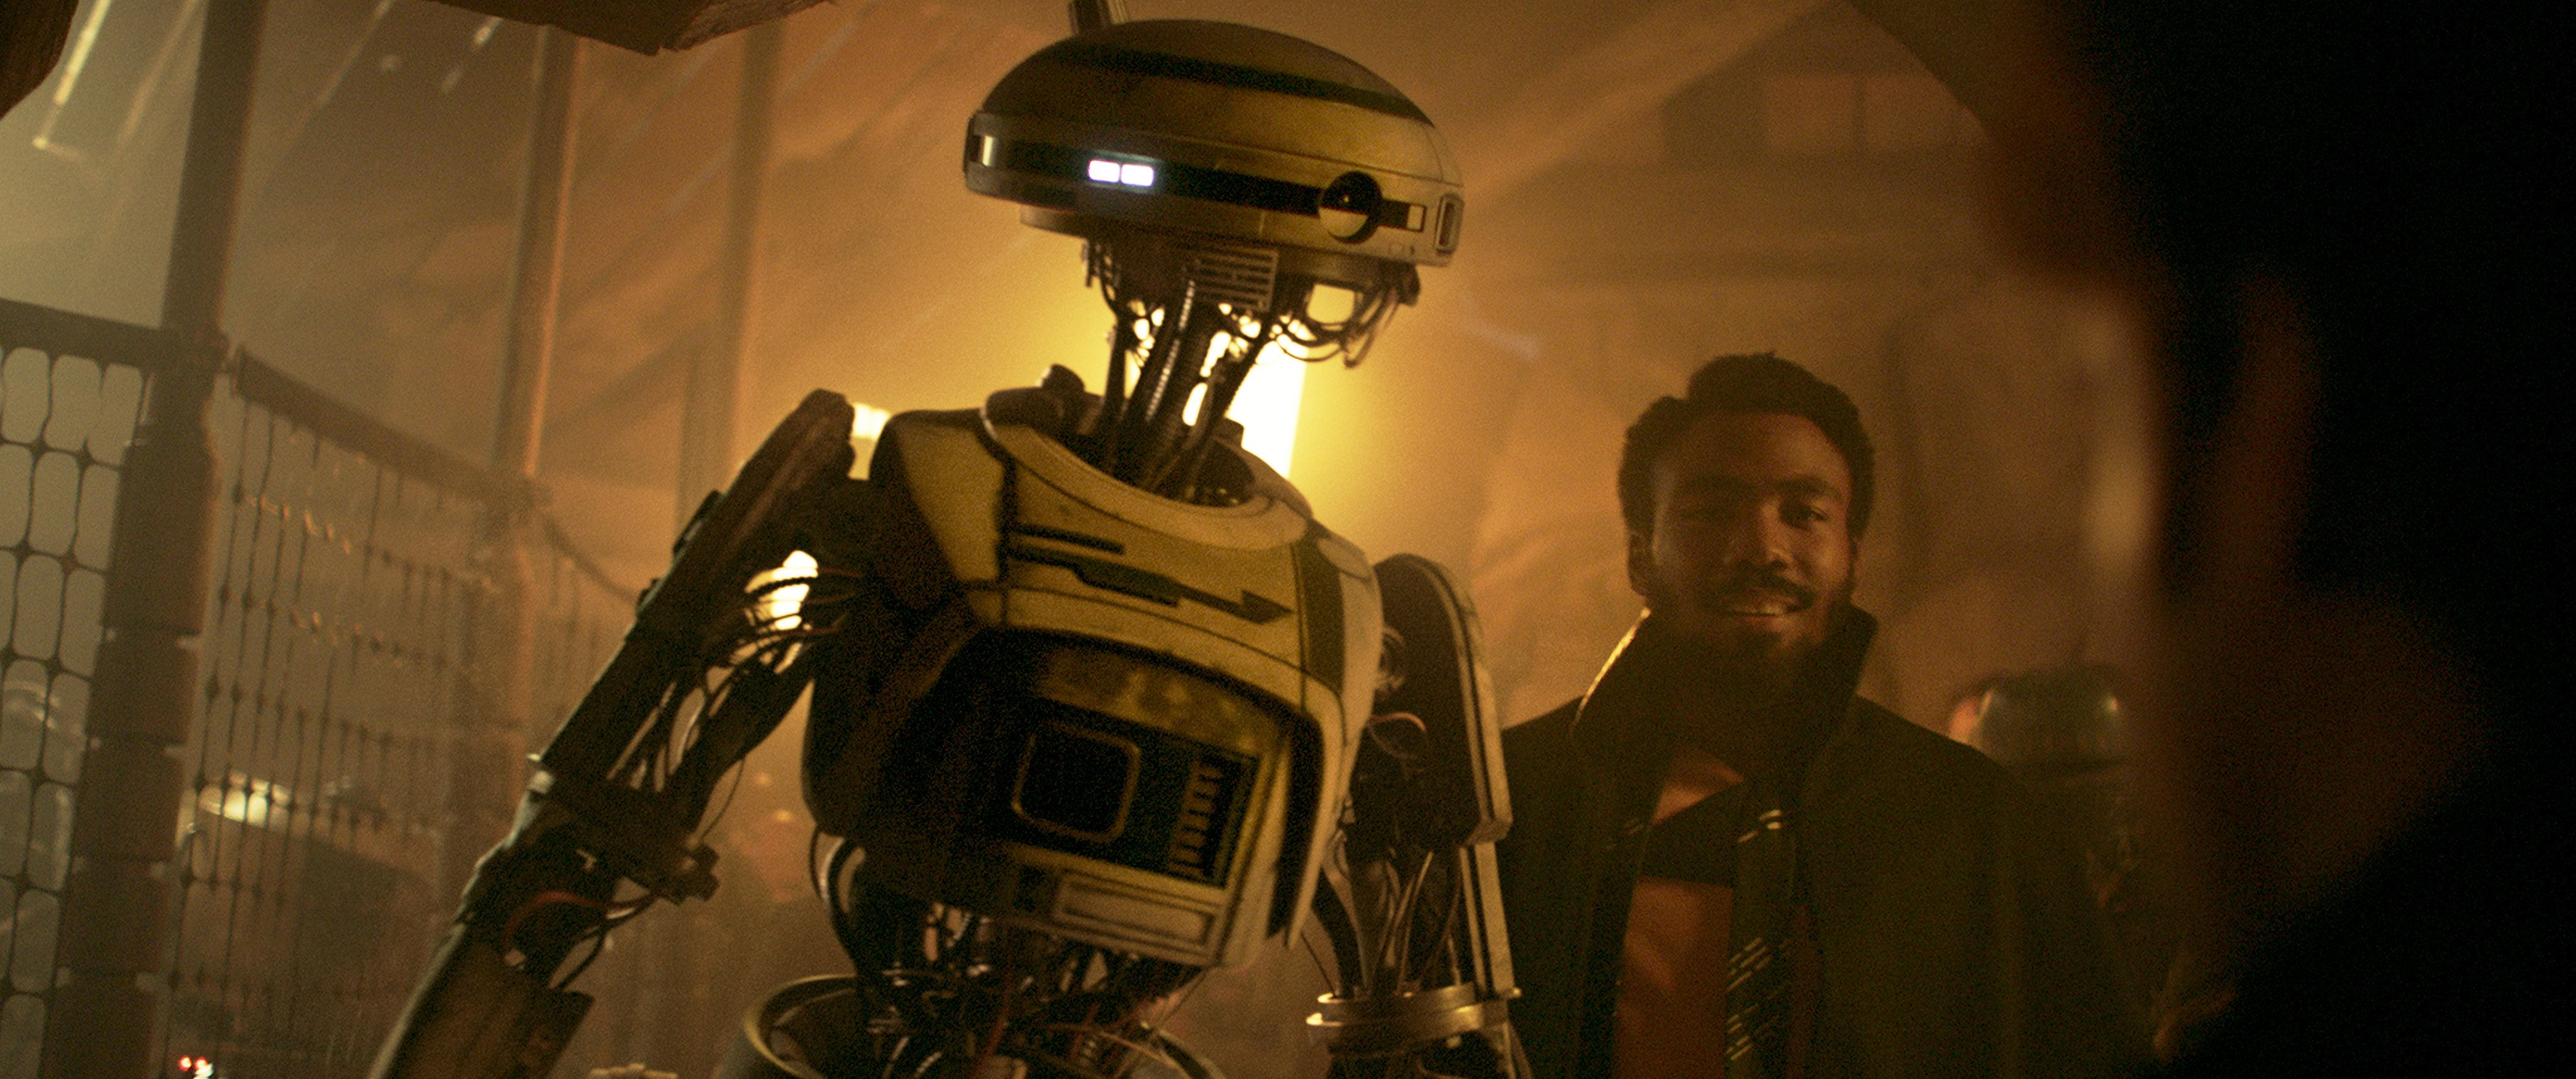 New Solo Images Feature Droids, Lando from the Star Wars Story ...